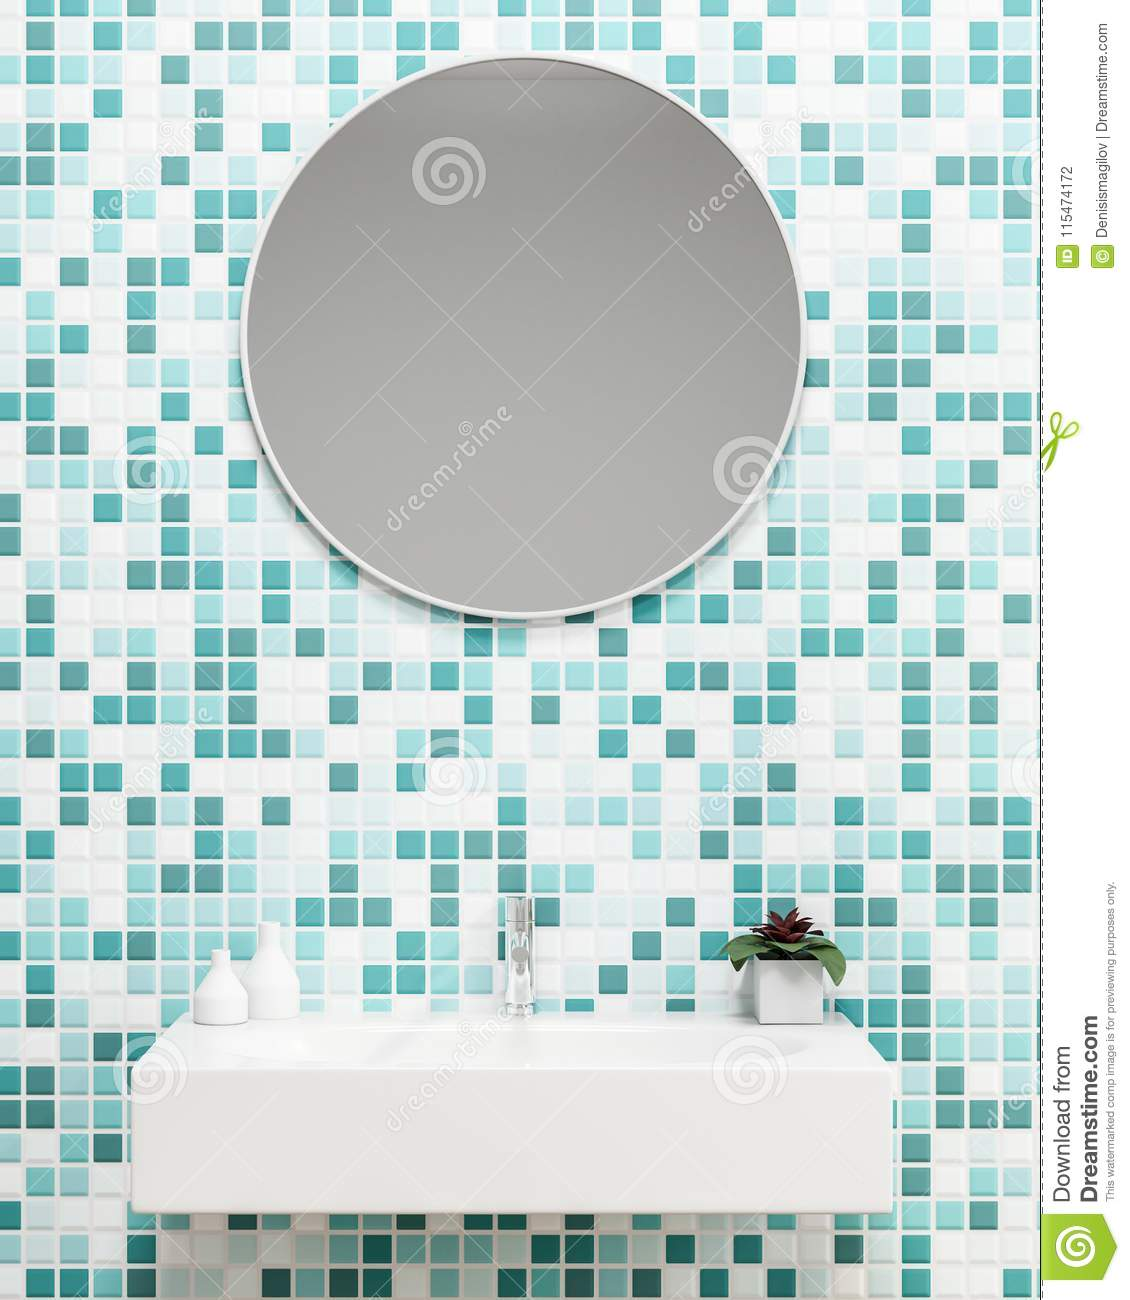 Green Tiles Bathroom With A Sink Close Up Stock Illustration ...